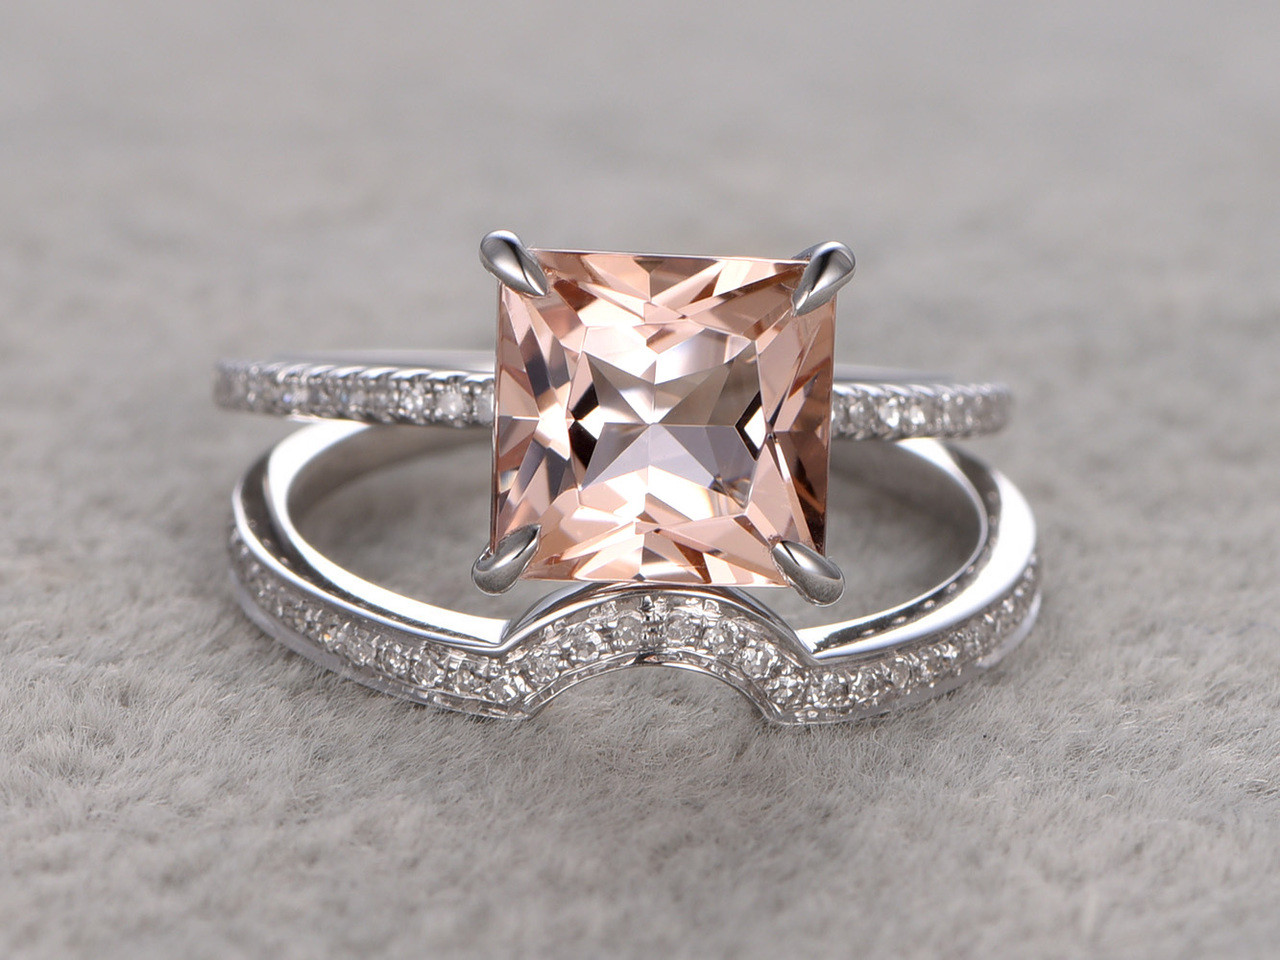 27 Carat Princess Cut Morganite Wedding Set Diamond Bridal Ring 14k White Gold Plain Edge Curved